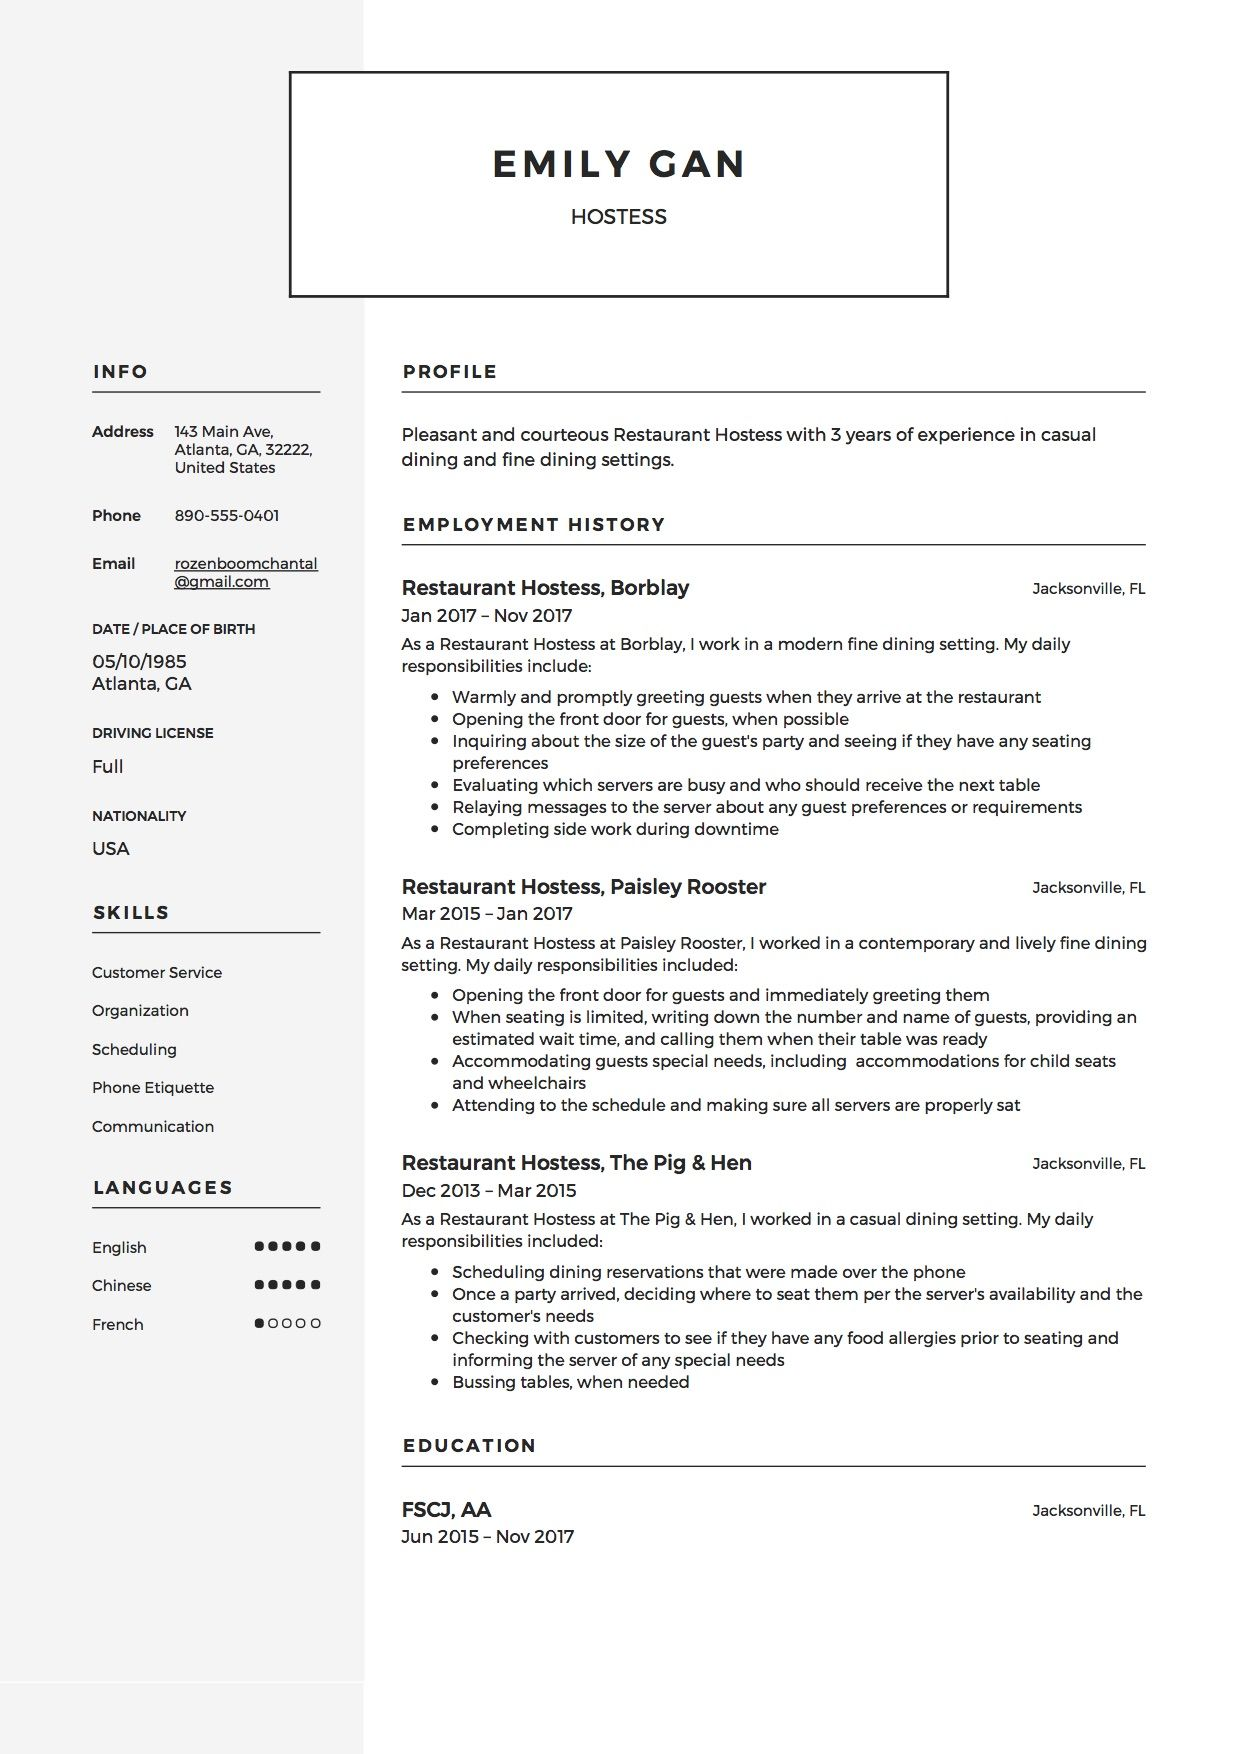 restaurant hostess resume sample template example guide job samples examples types of Resume Hostess Job Resume Examples